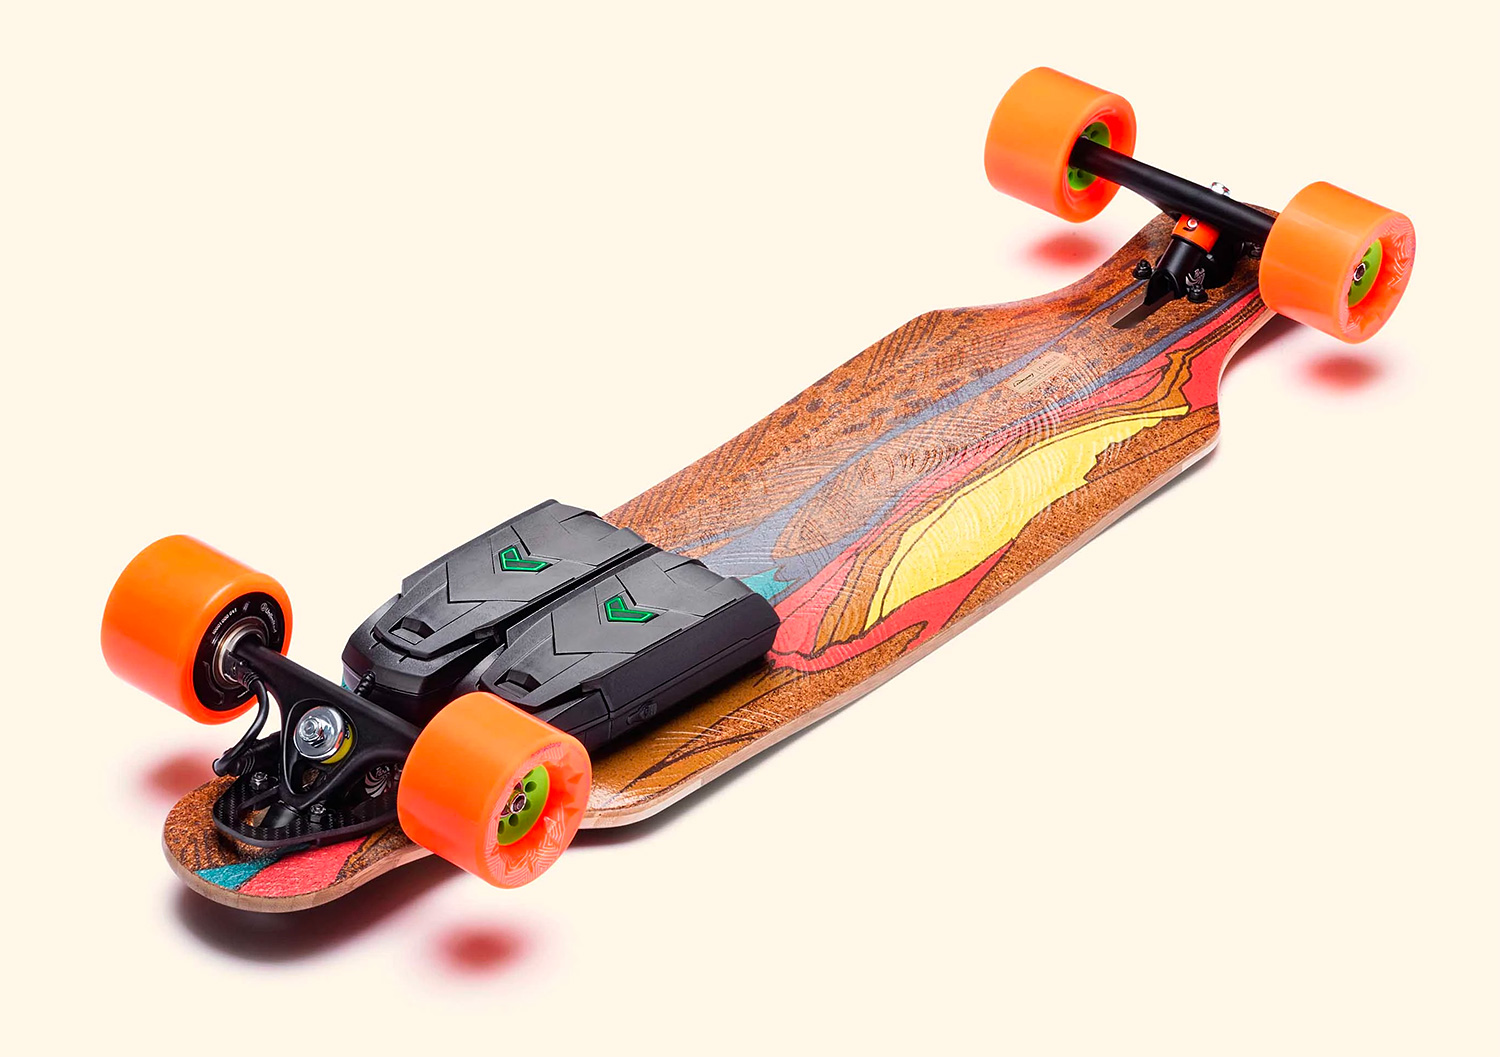 Convert Your Skate into an Electric Vehicle with Unlimited x Loaded at werd.com